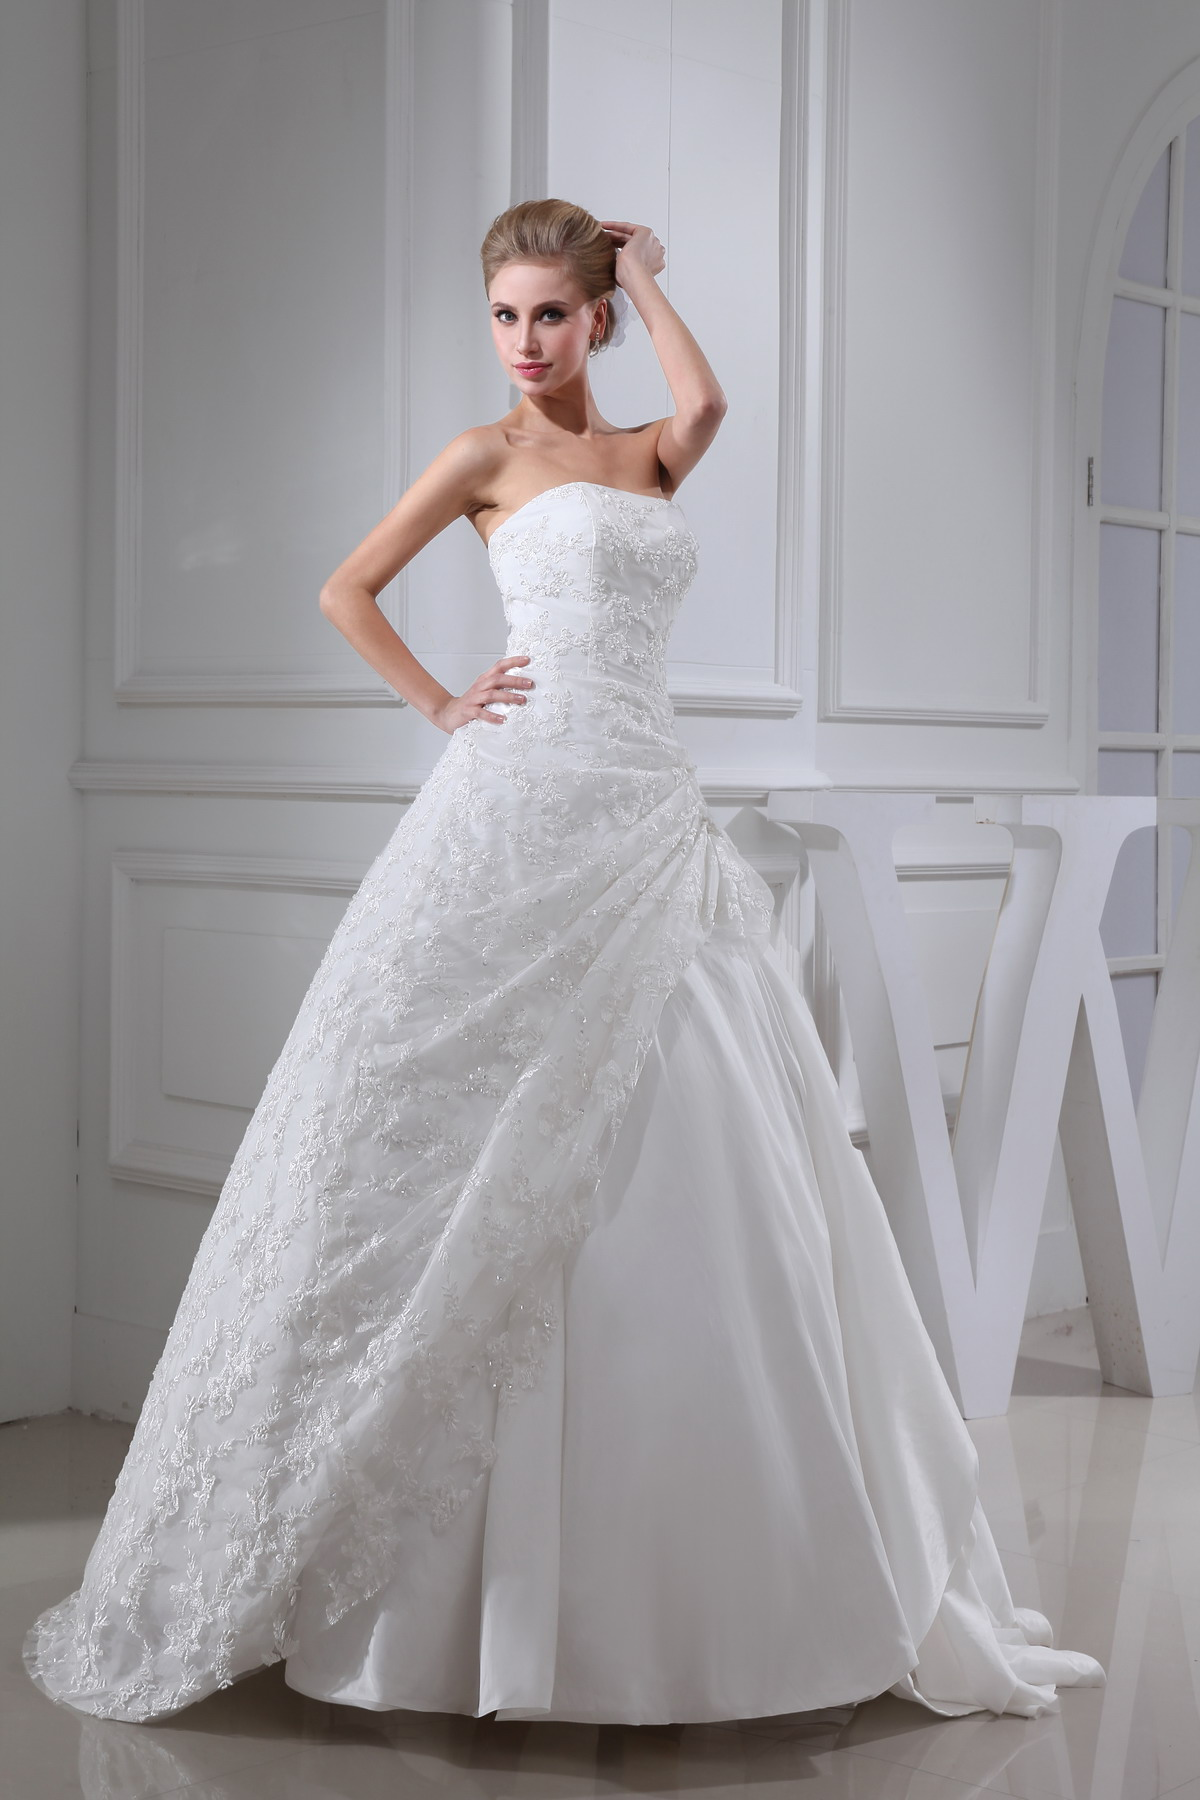 Contemporary plus size wedding dresses with sleeves no for Wedding dresses no train